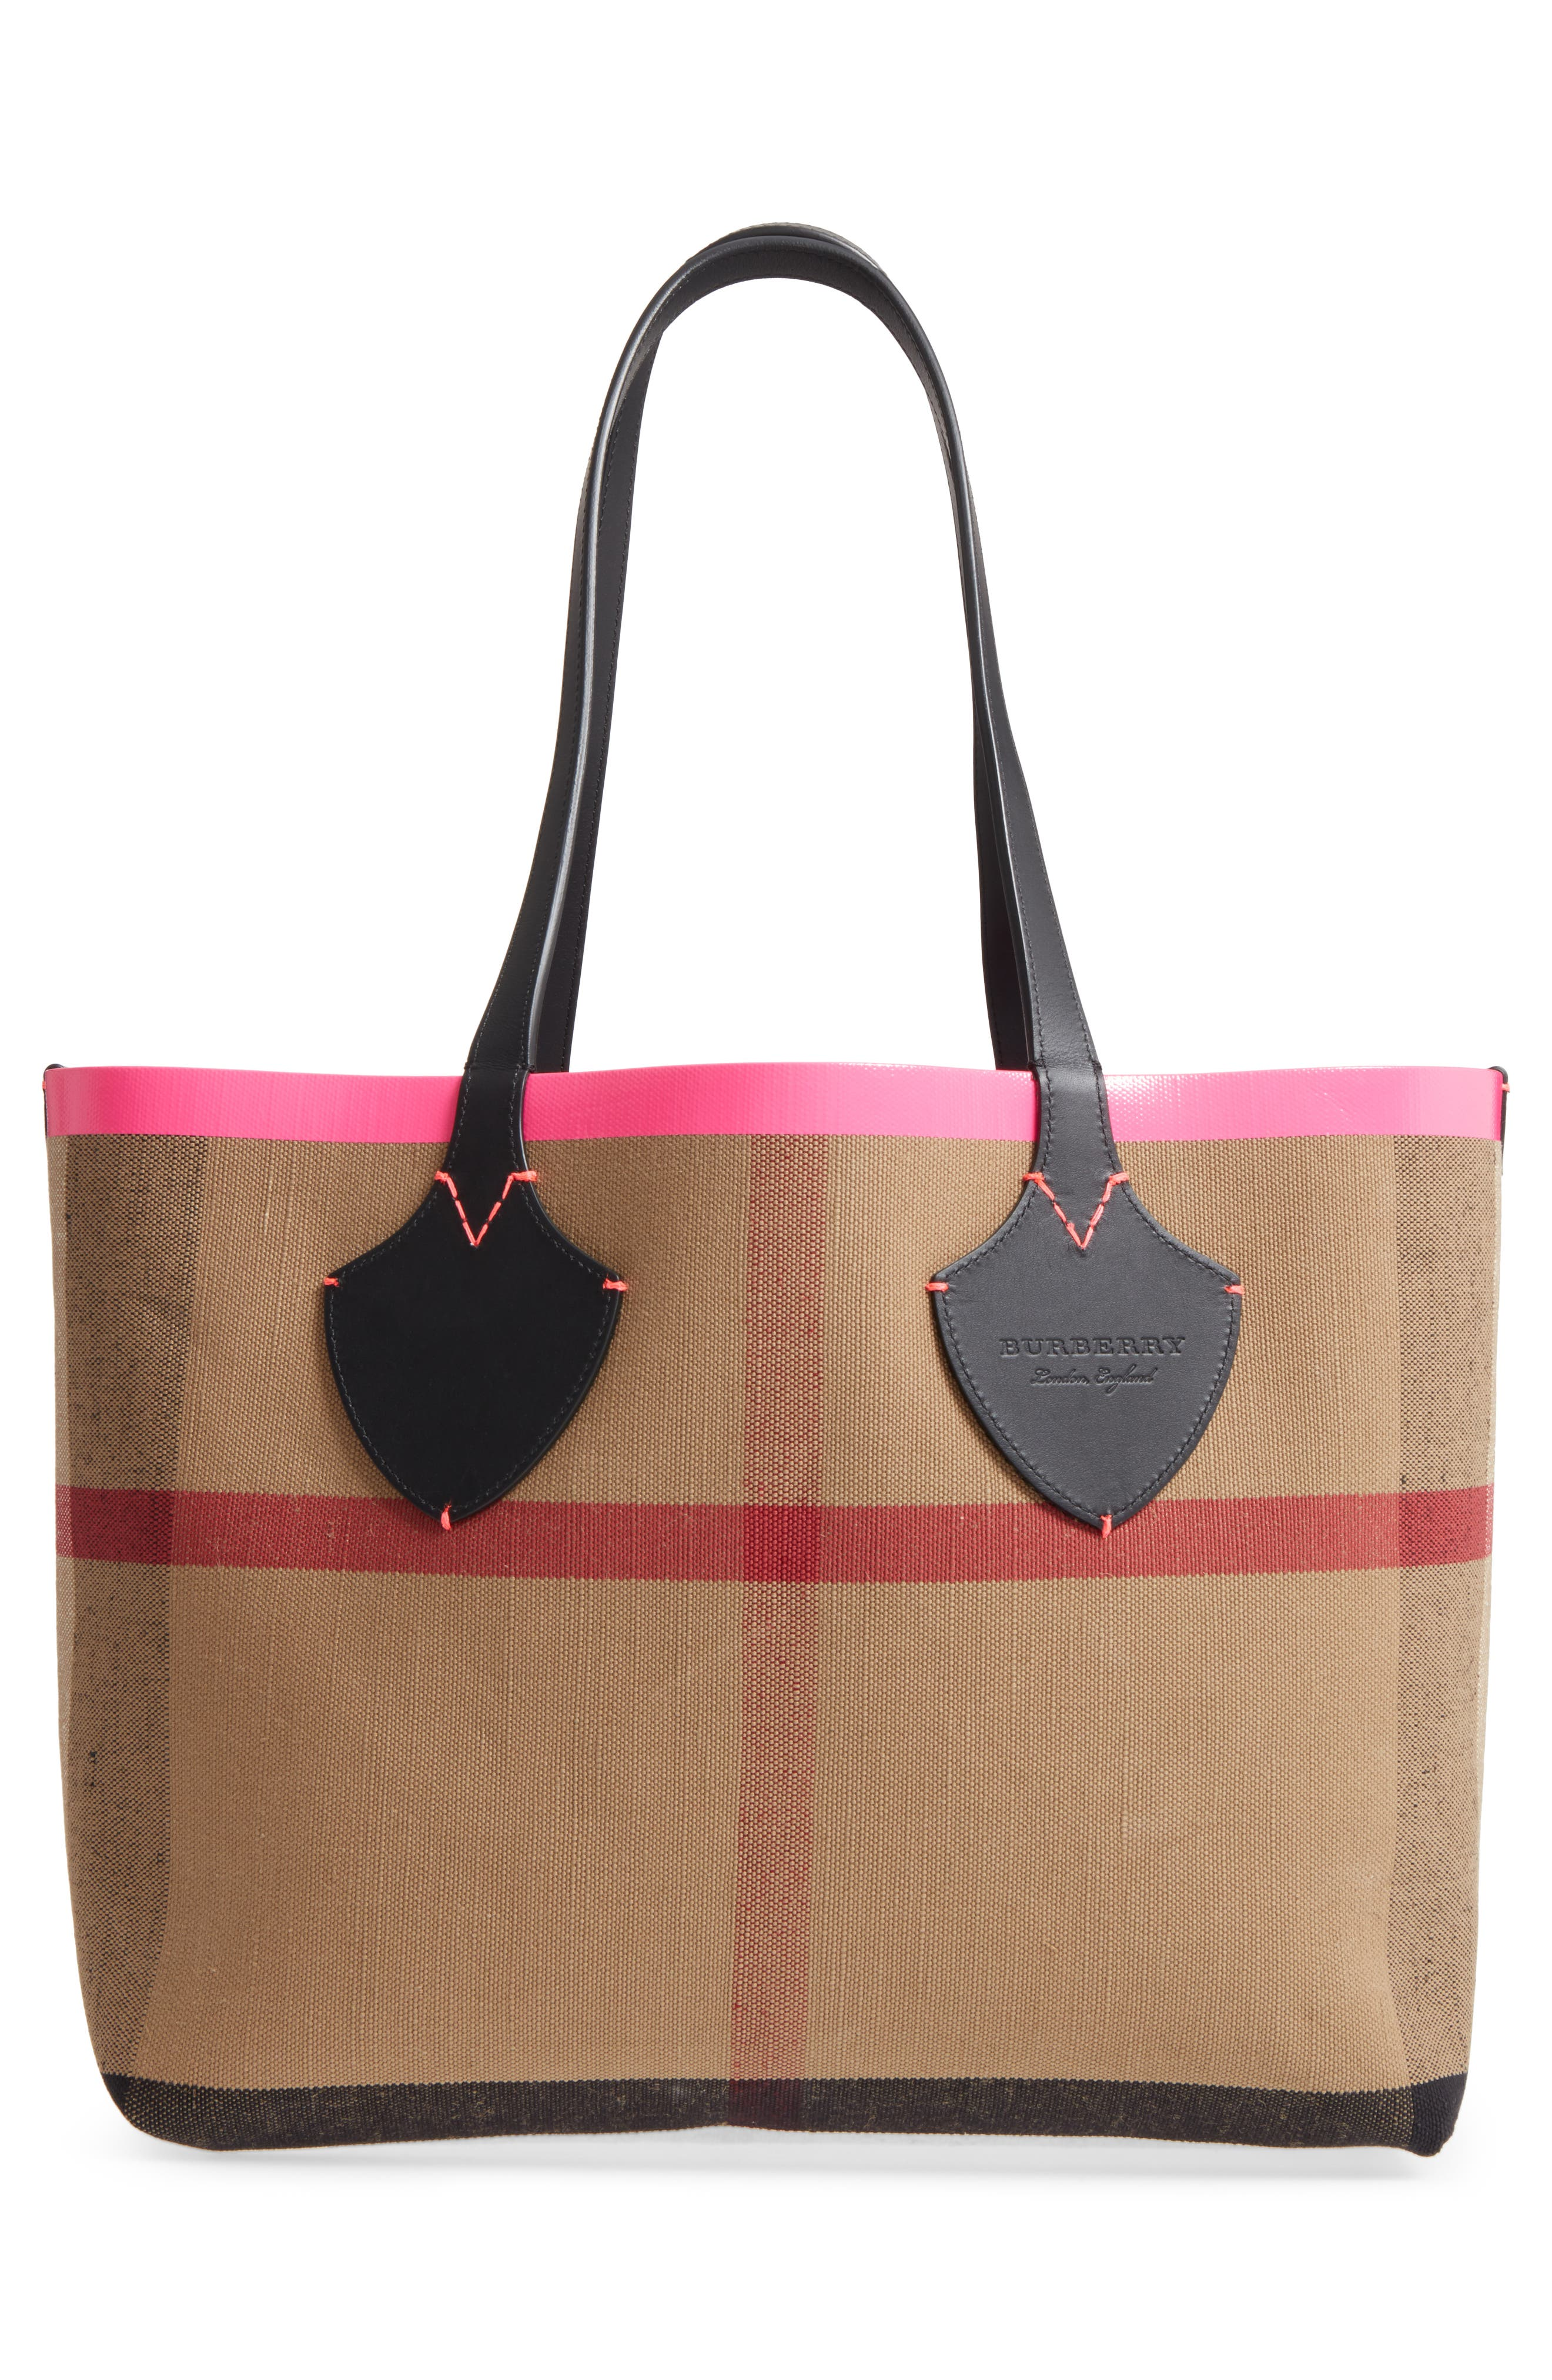 Medium Reversible Check Canvas & Leather Tote,                             Alternate thumbnail 3, color,